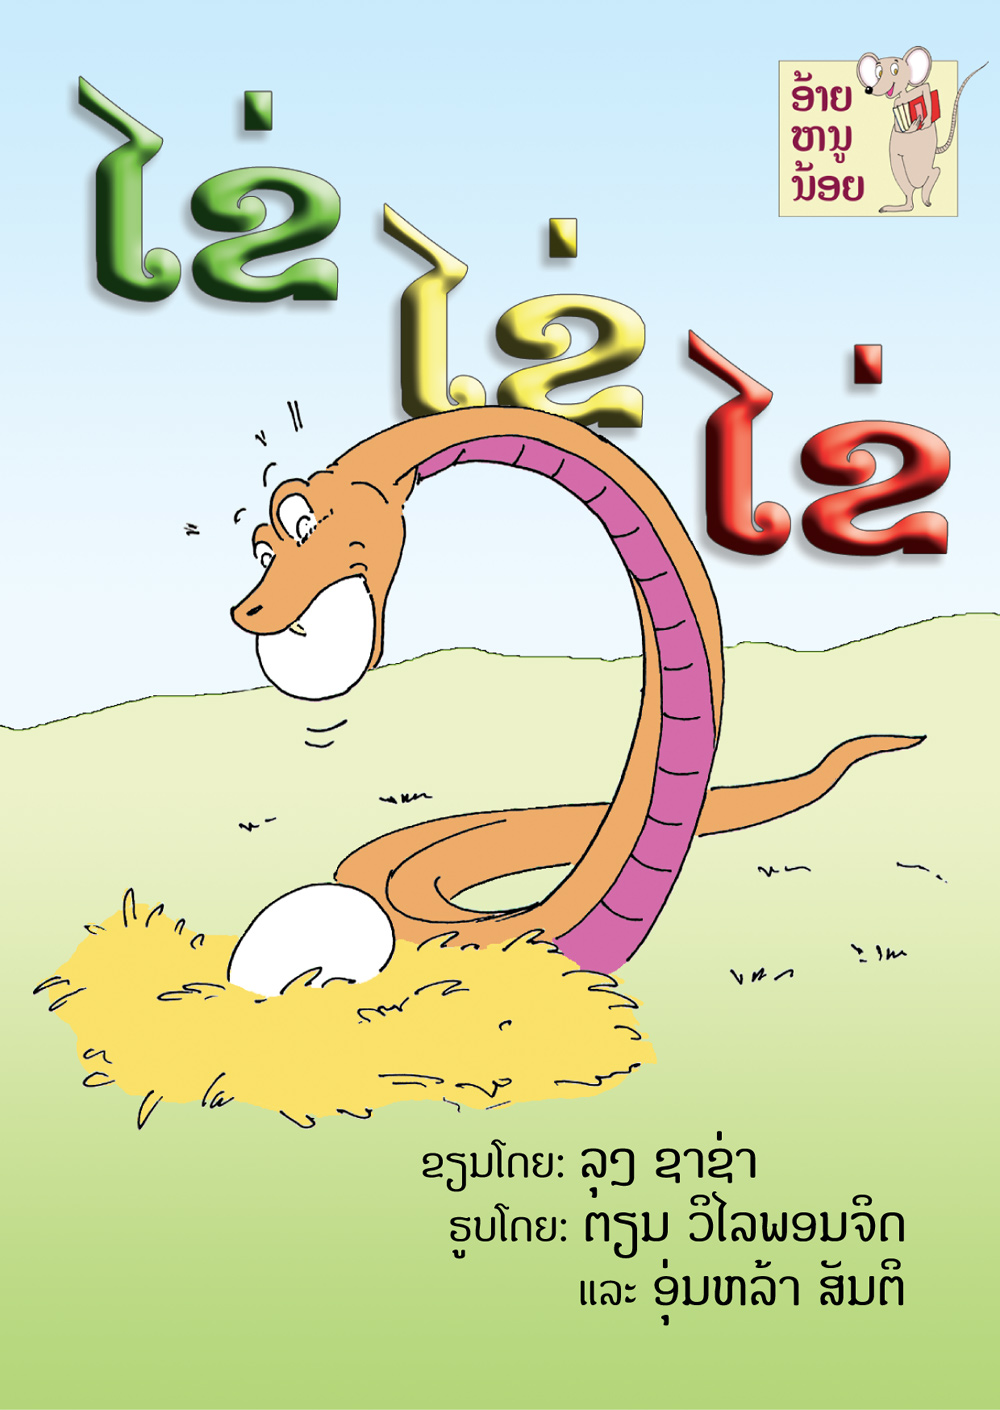 Eggs, Eggs, Eggs large book cover, published in Lao language